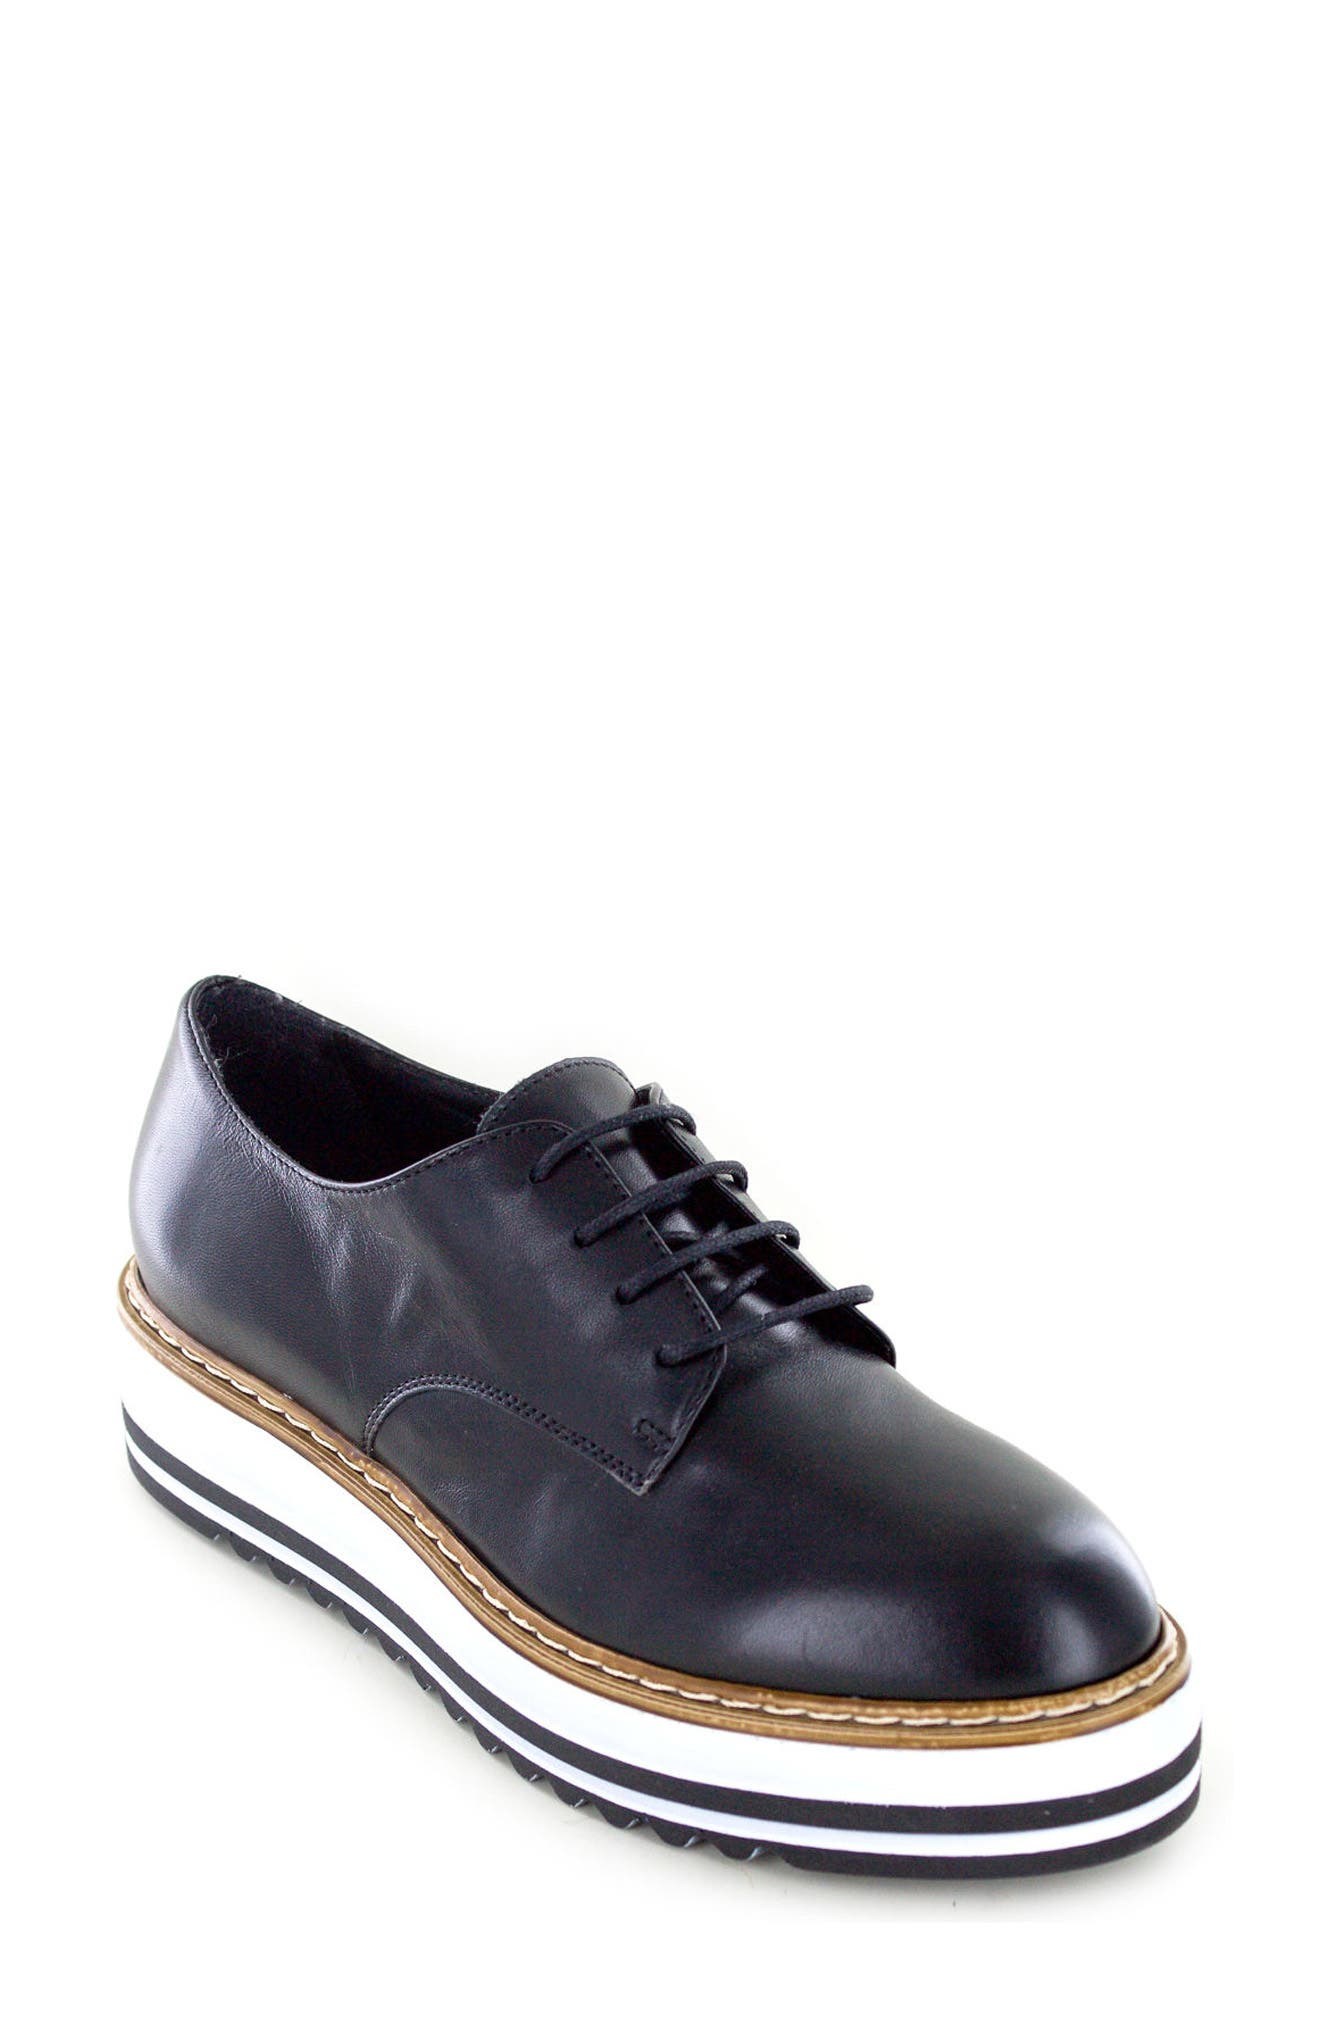 by White Mountain Belinda Platform Oxford,                             Main thumbnail 1, color,                             BLACK LEATHER